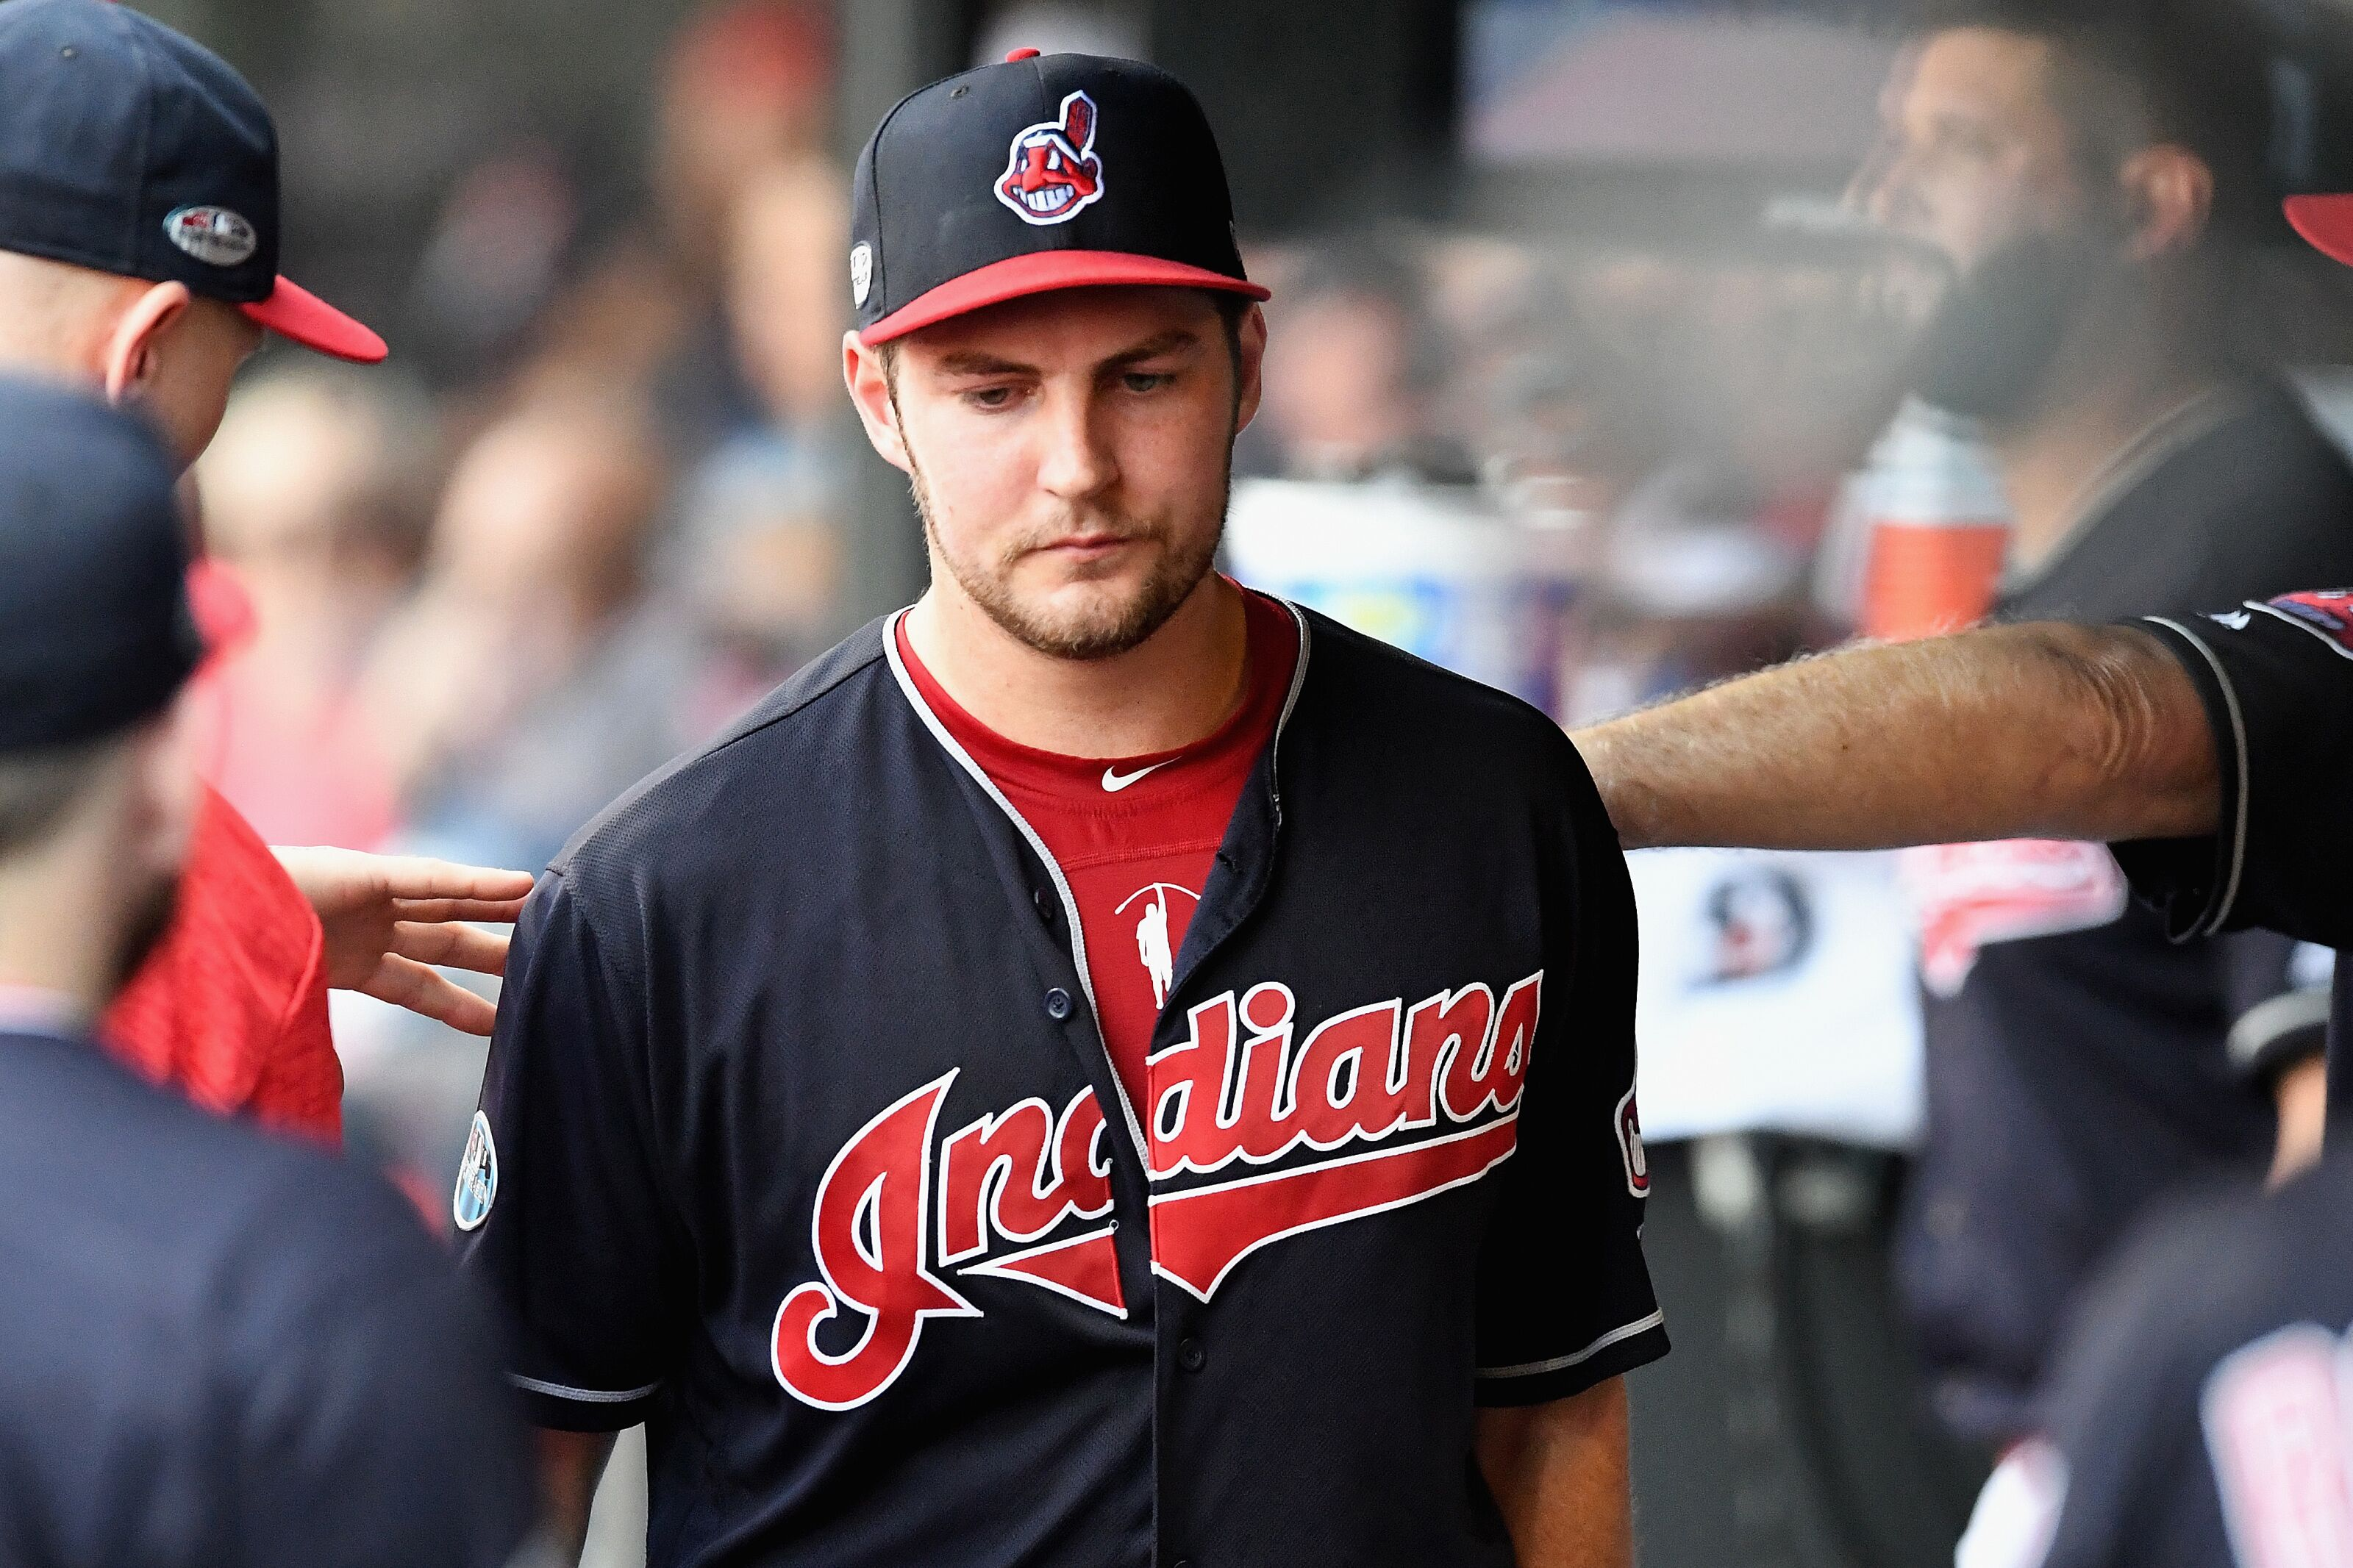 Cleveland Indians: Cleveland Indians: Indians Lose, The Season Is Over